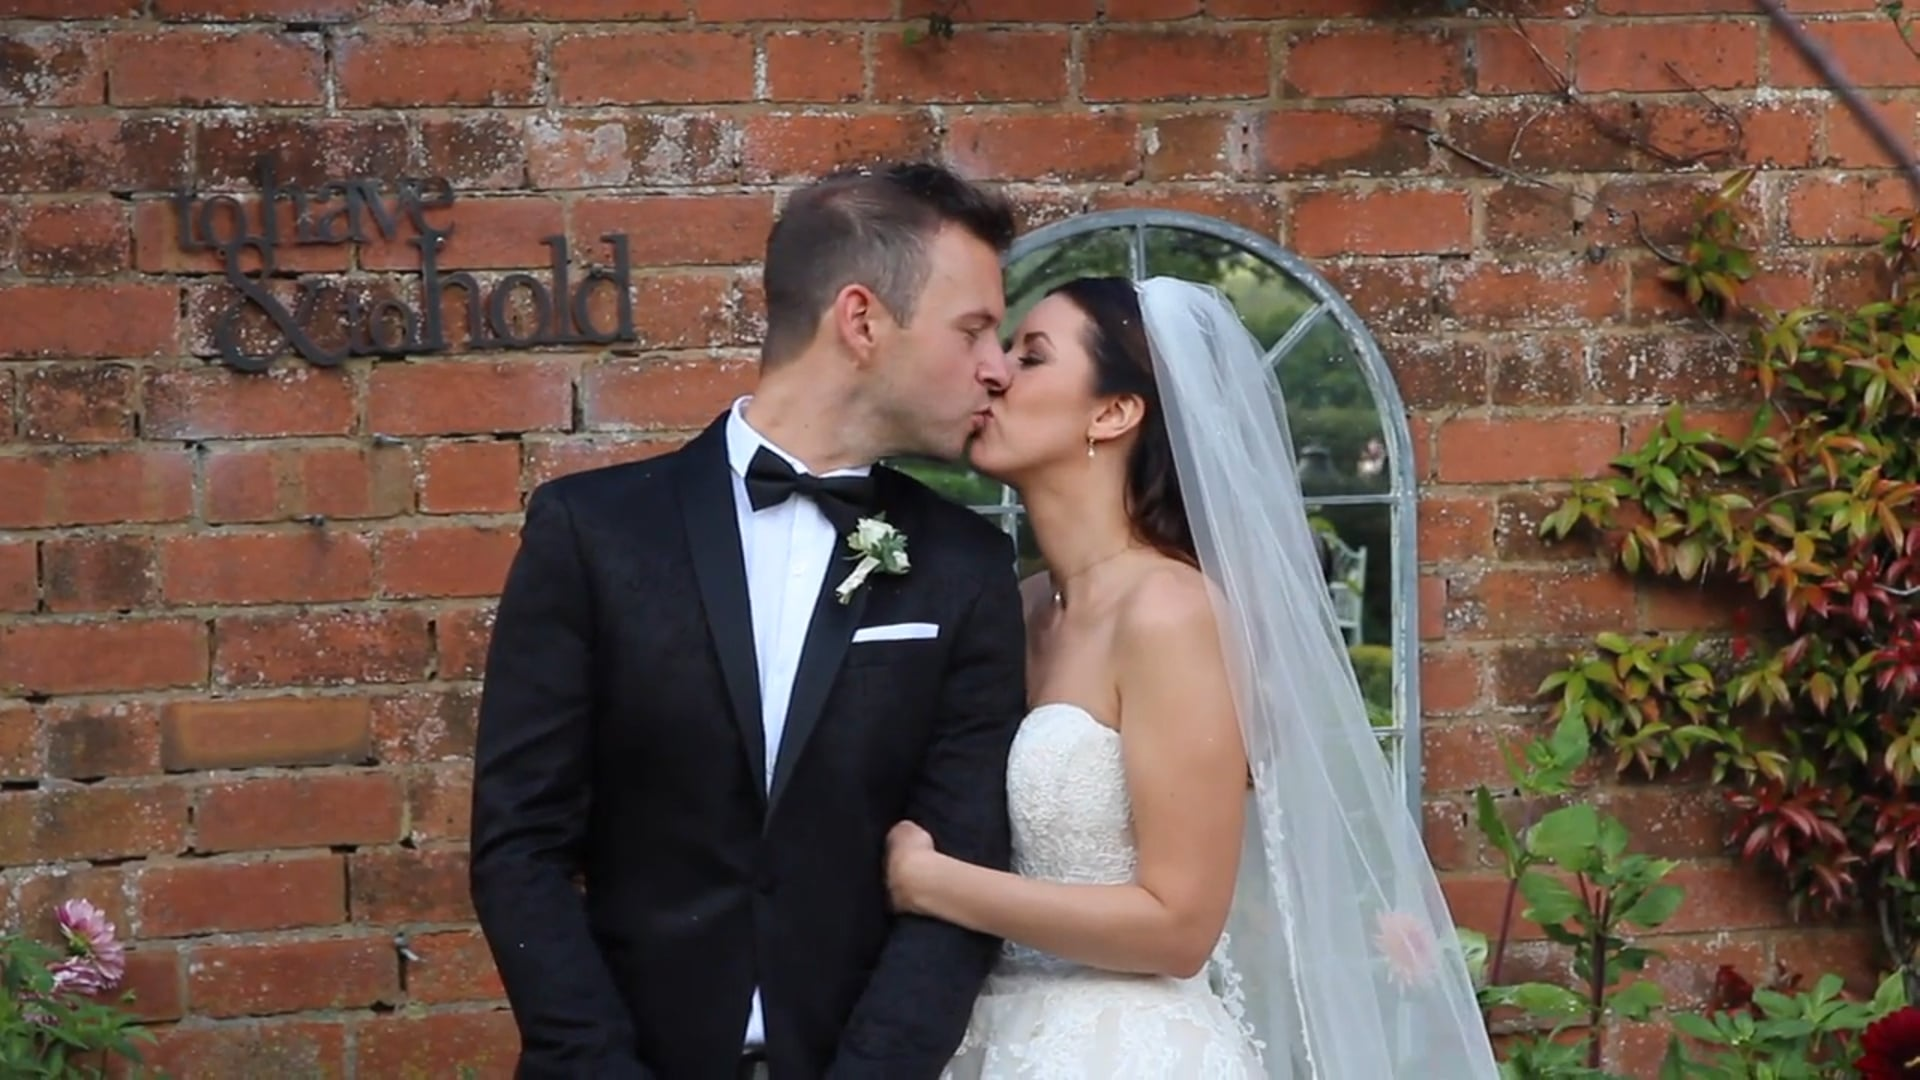 Kayleigh & Liam's Wedding Preview